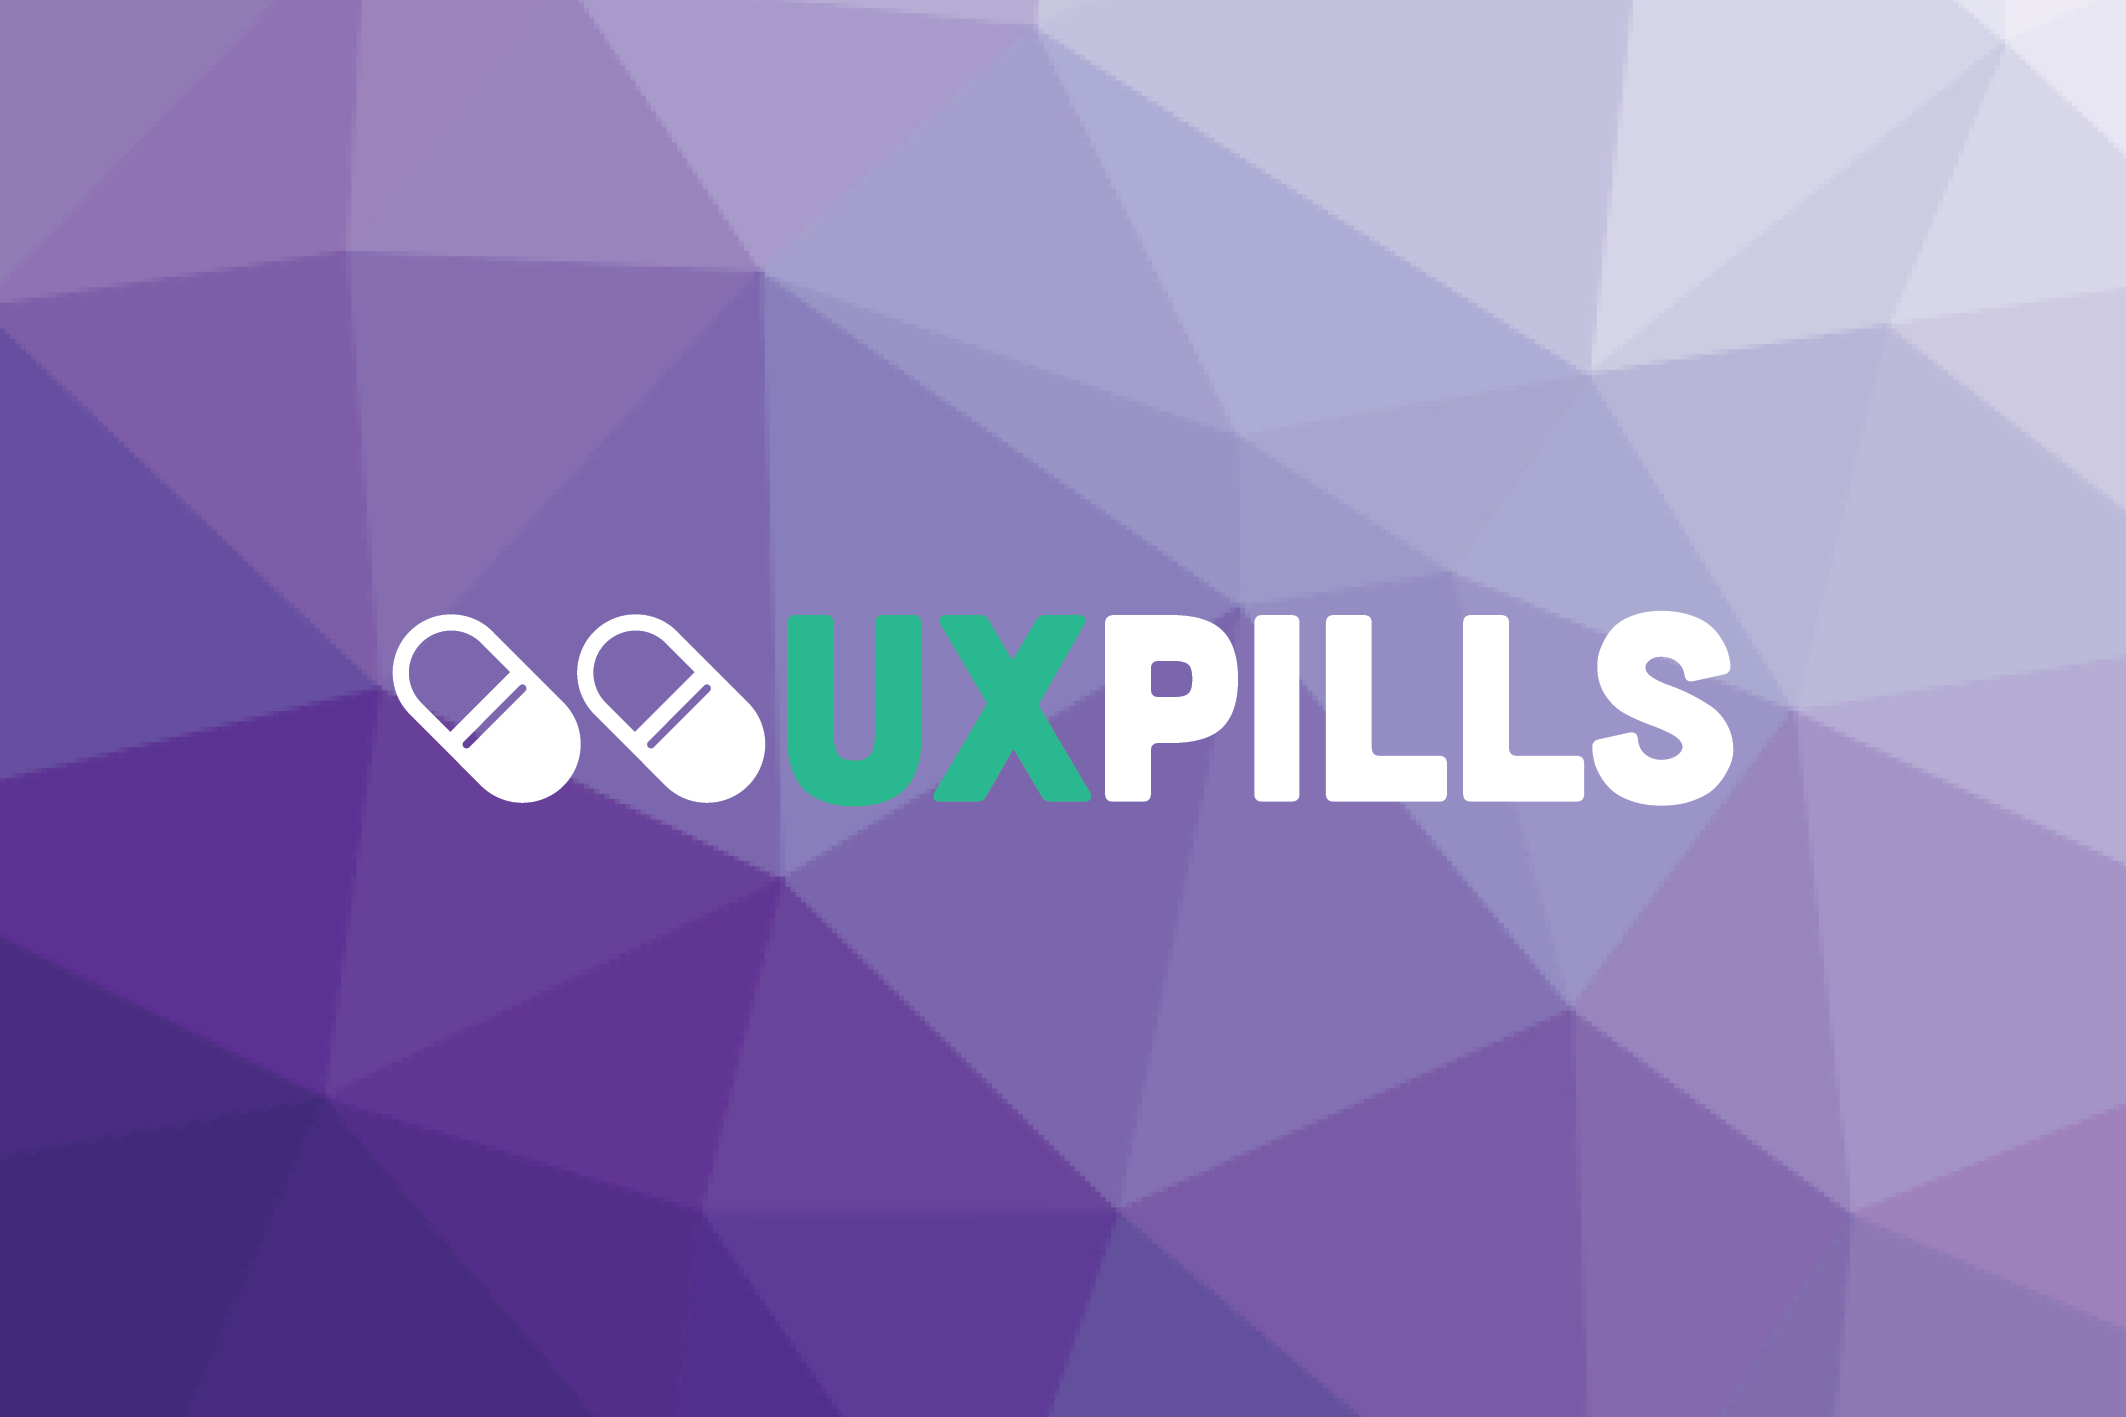 UX Pills - Customised seminars and workshops on Human-Centered, UX and interaction design.